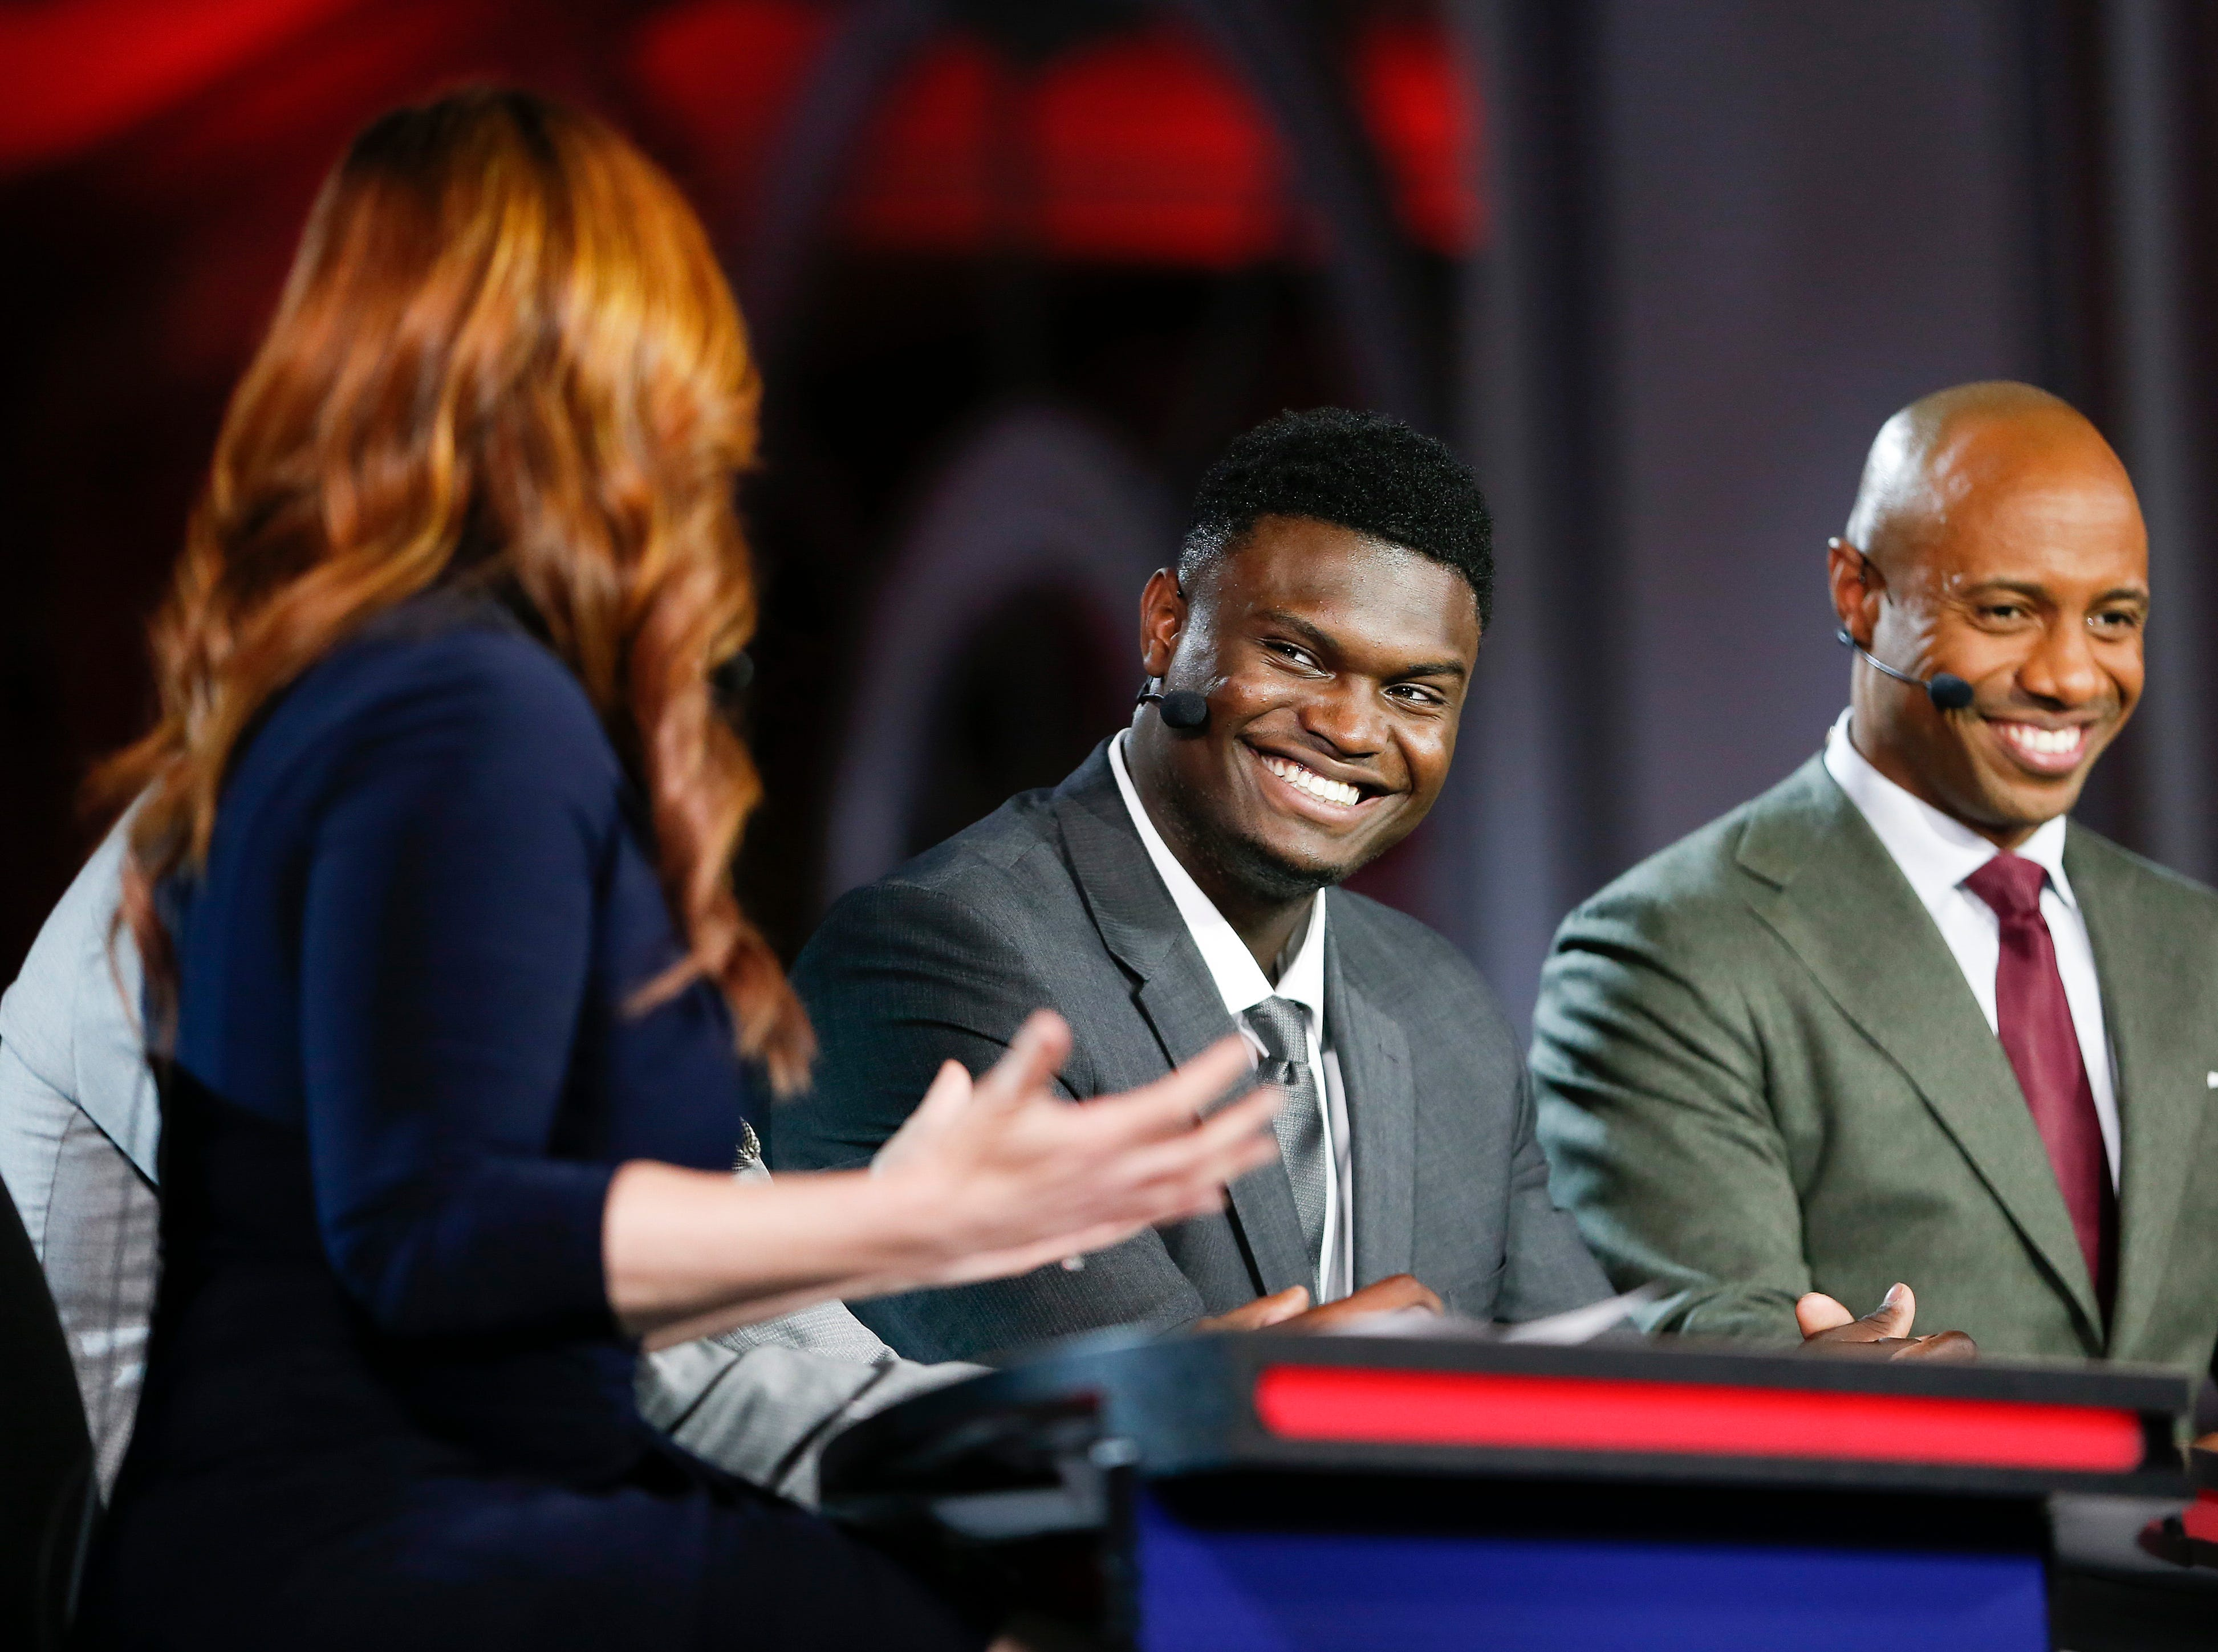 Duke's Zion Williamson, second from right, is interviewed by an ESPN reporter during the NBA basketball draft lottery Tuesday, May 14, 2019, in Chicago. (AP Photo/Nuccio DiNuzzo)